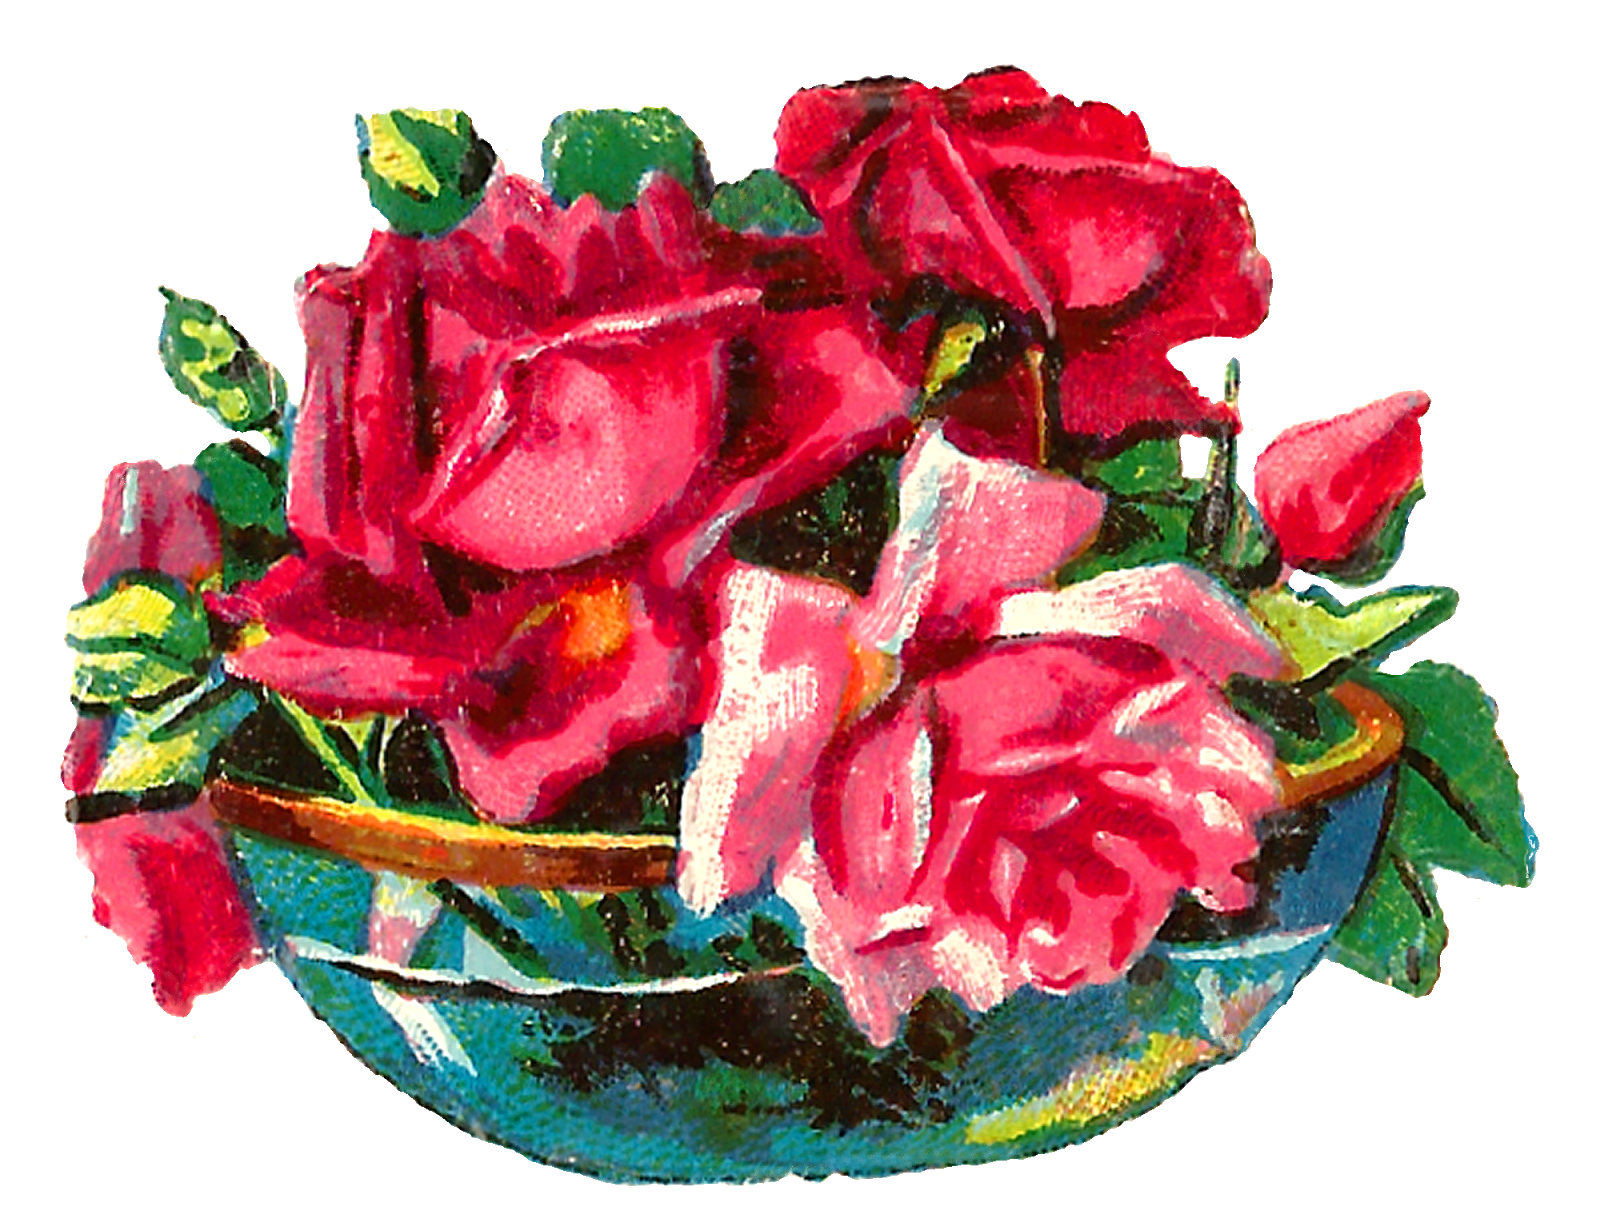 Roses clipart shabby chic. Antique images pink rose